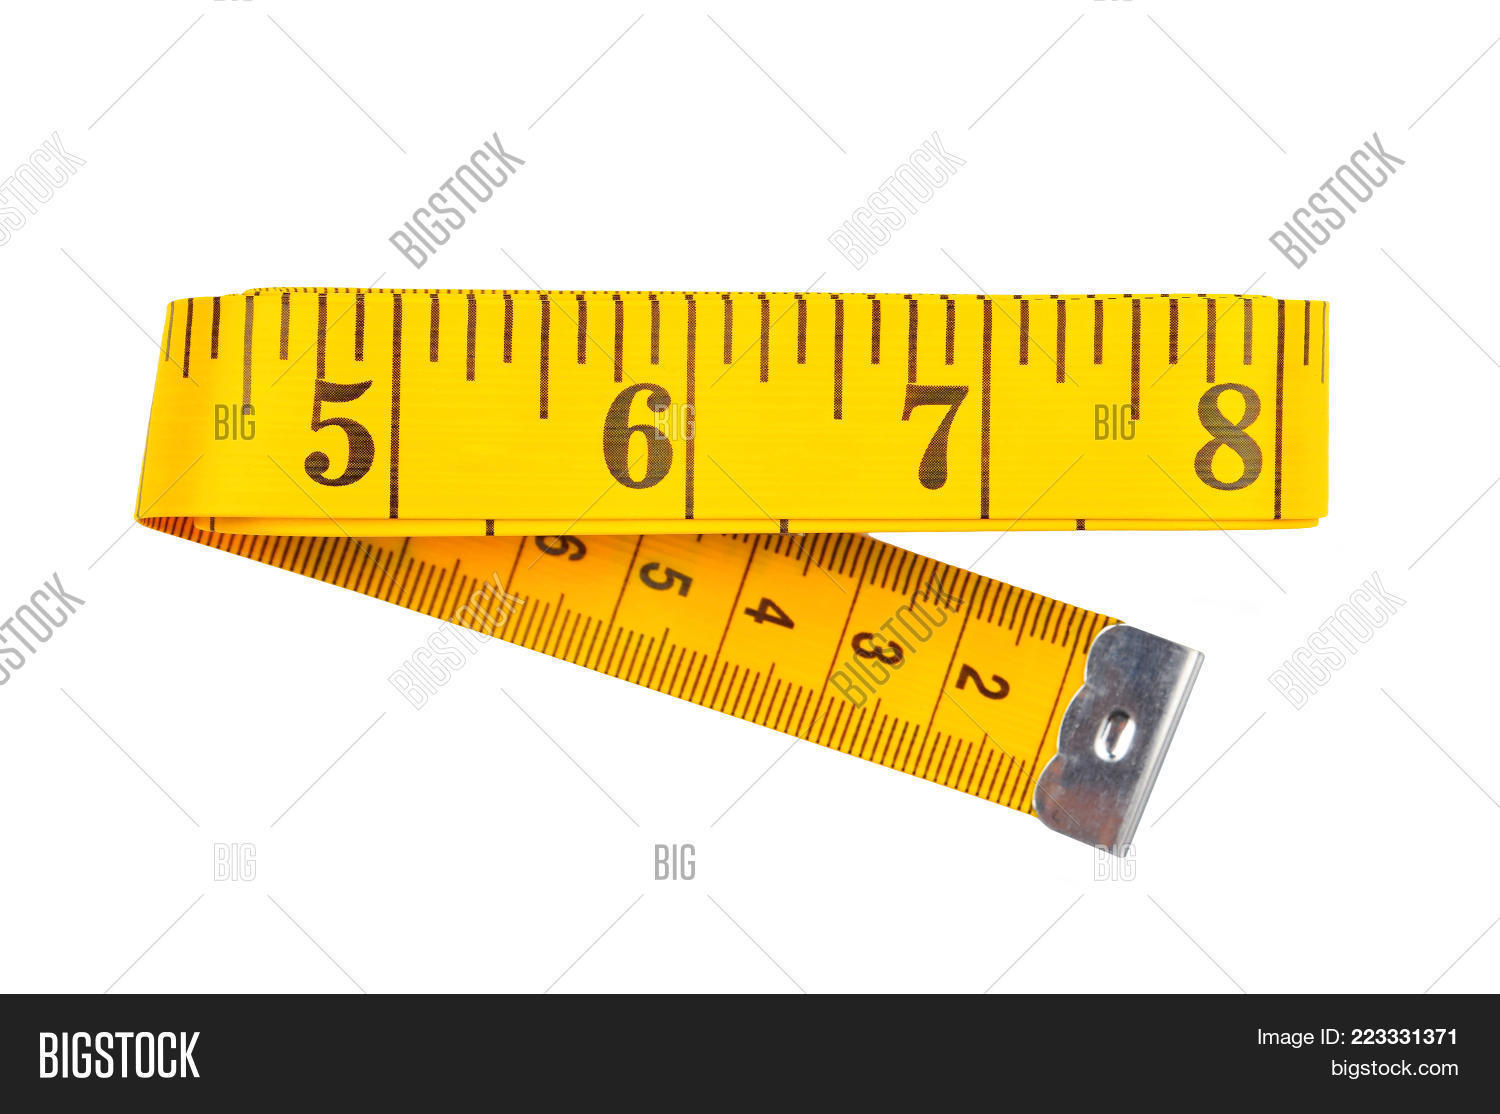 Tape measure yellow measuring tape PowerPoint Template - Tape ...